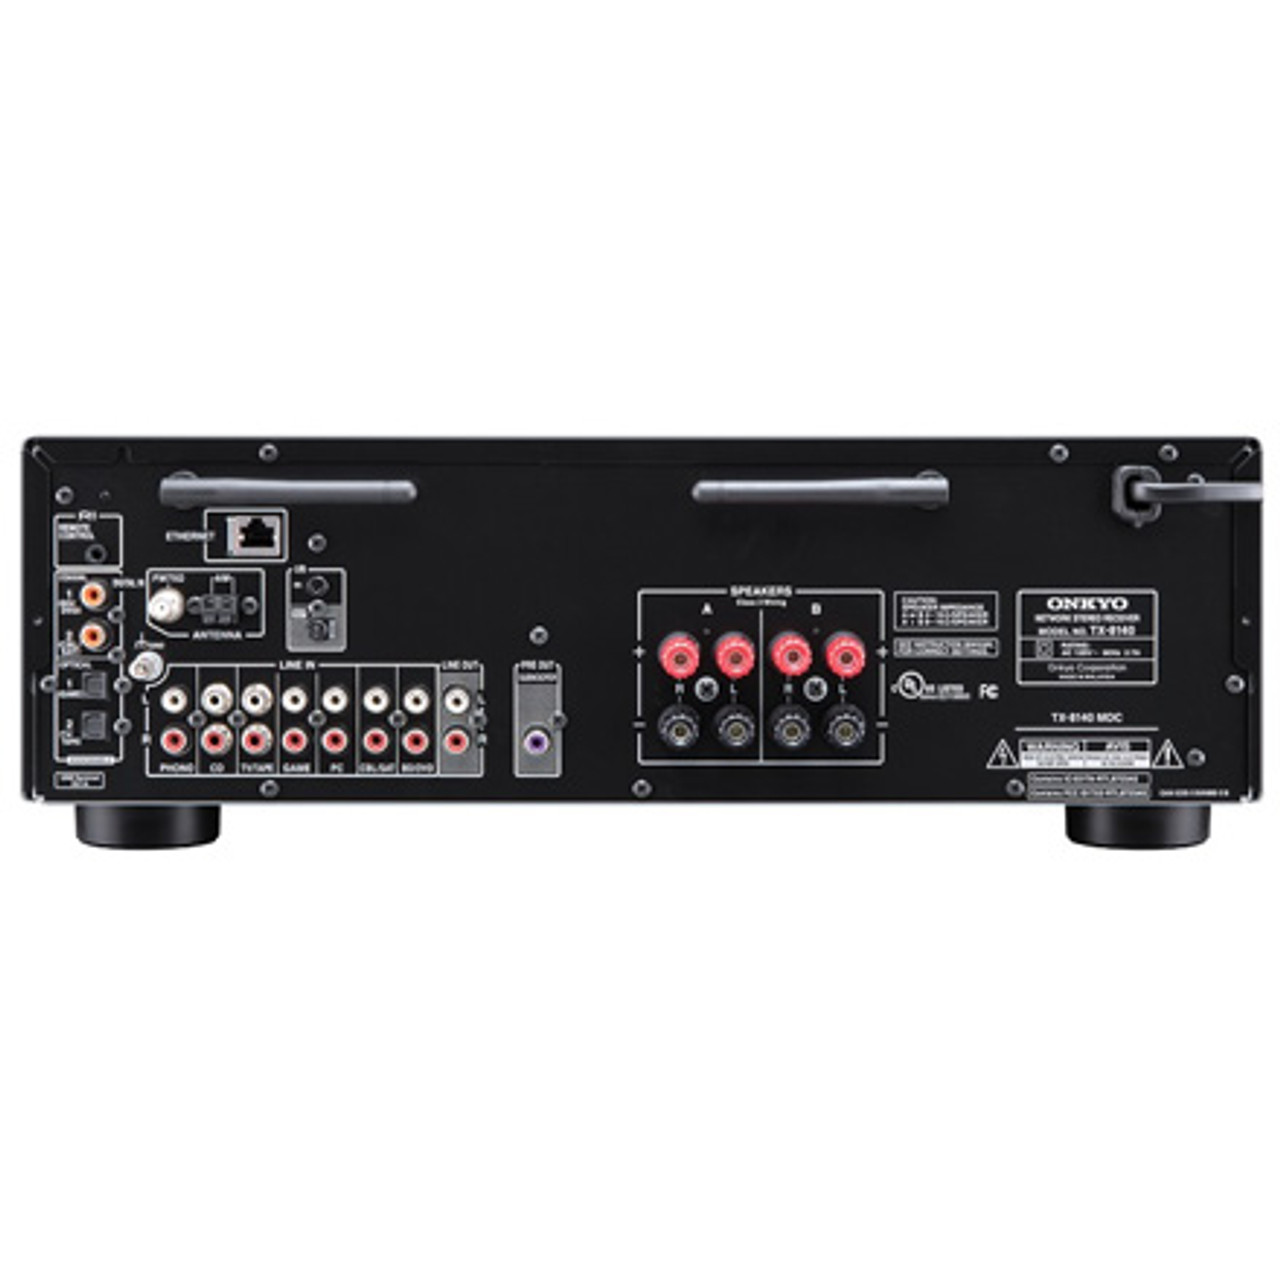 Onkyo® TX-8270 2-Channel Network Stereo Receiver with Built-In Bluetooth & Wi-Fi